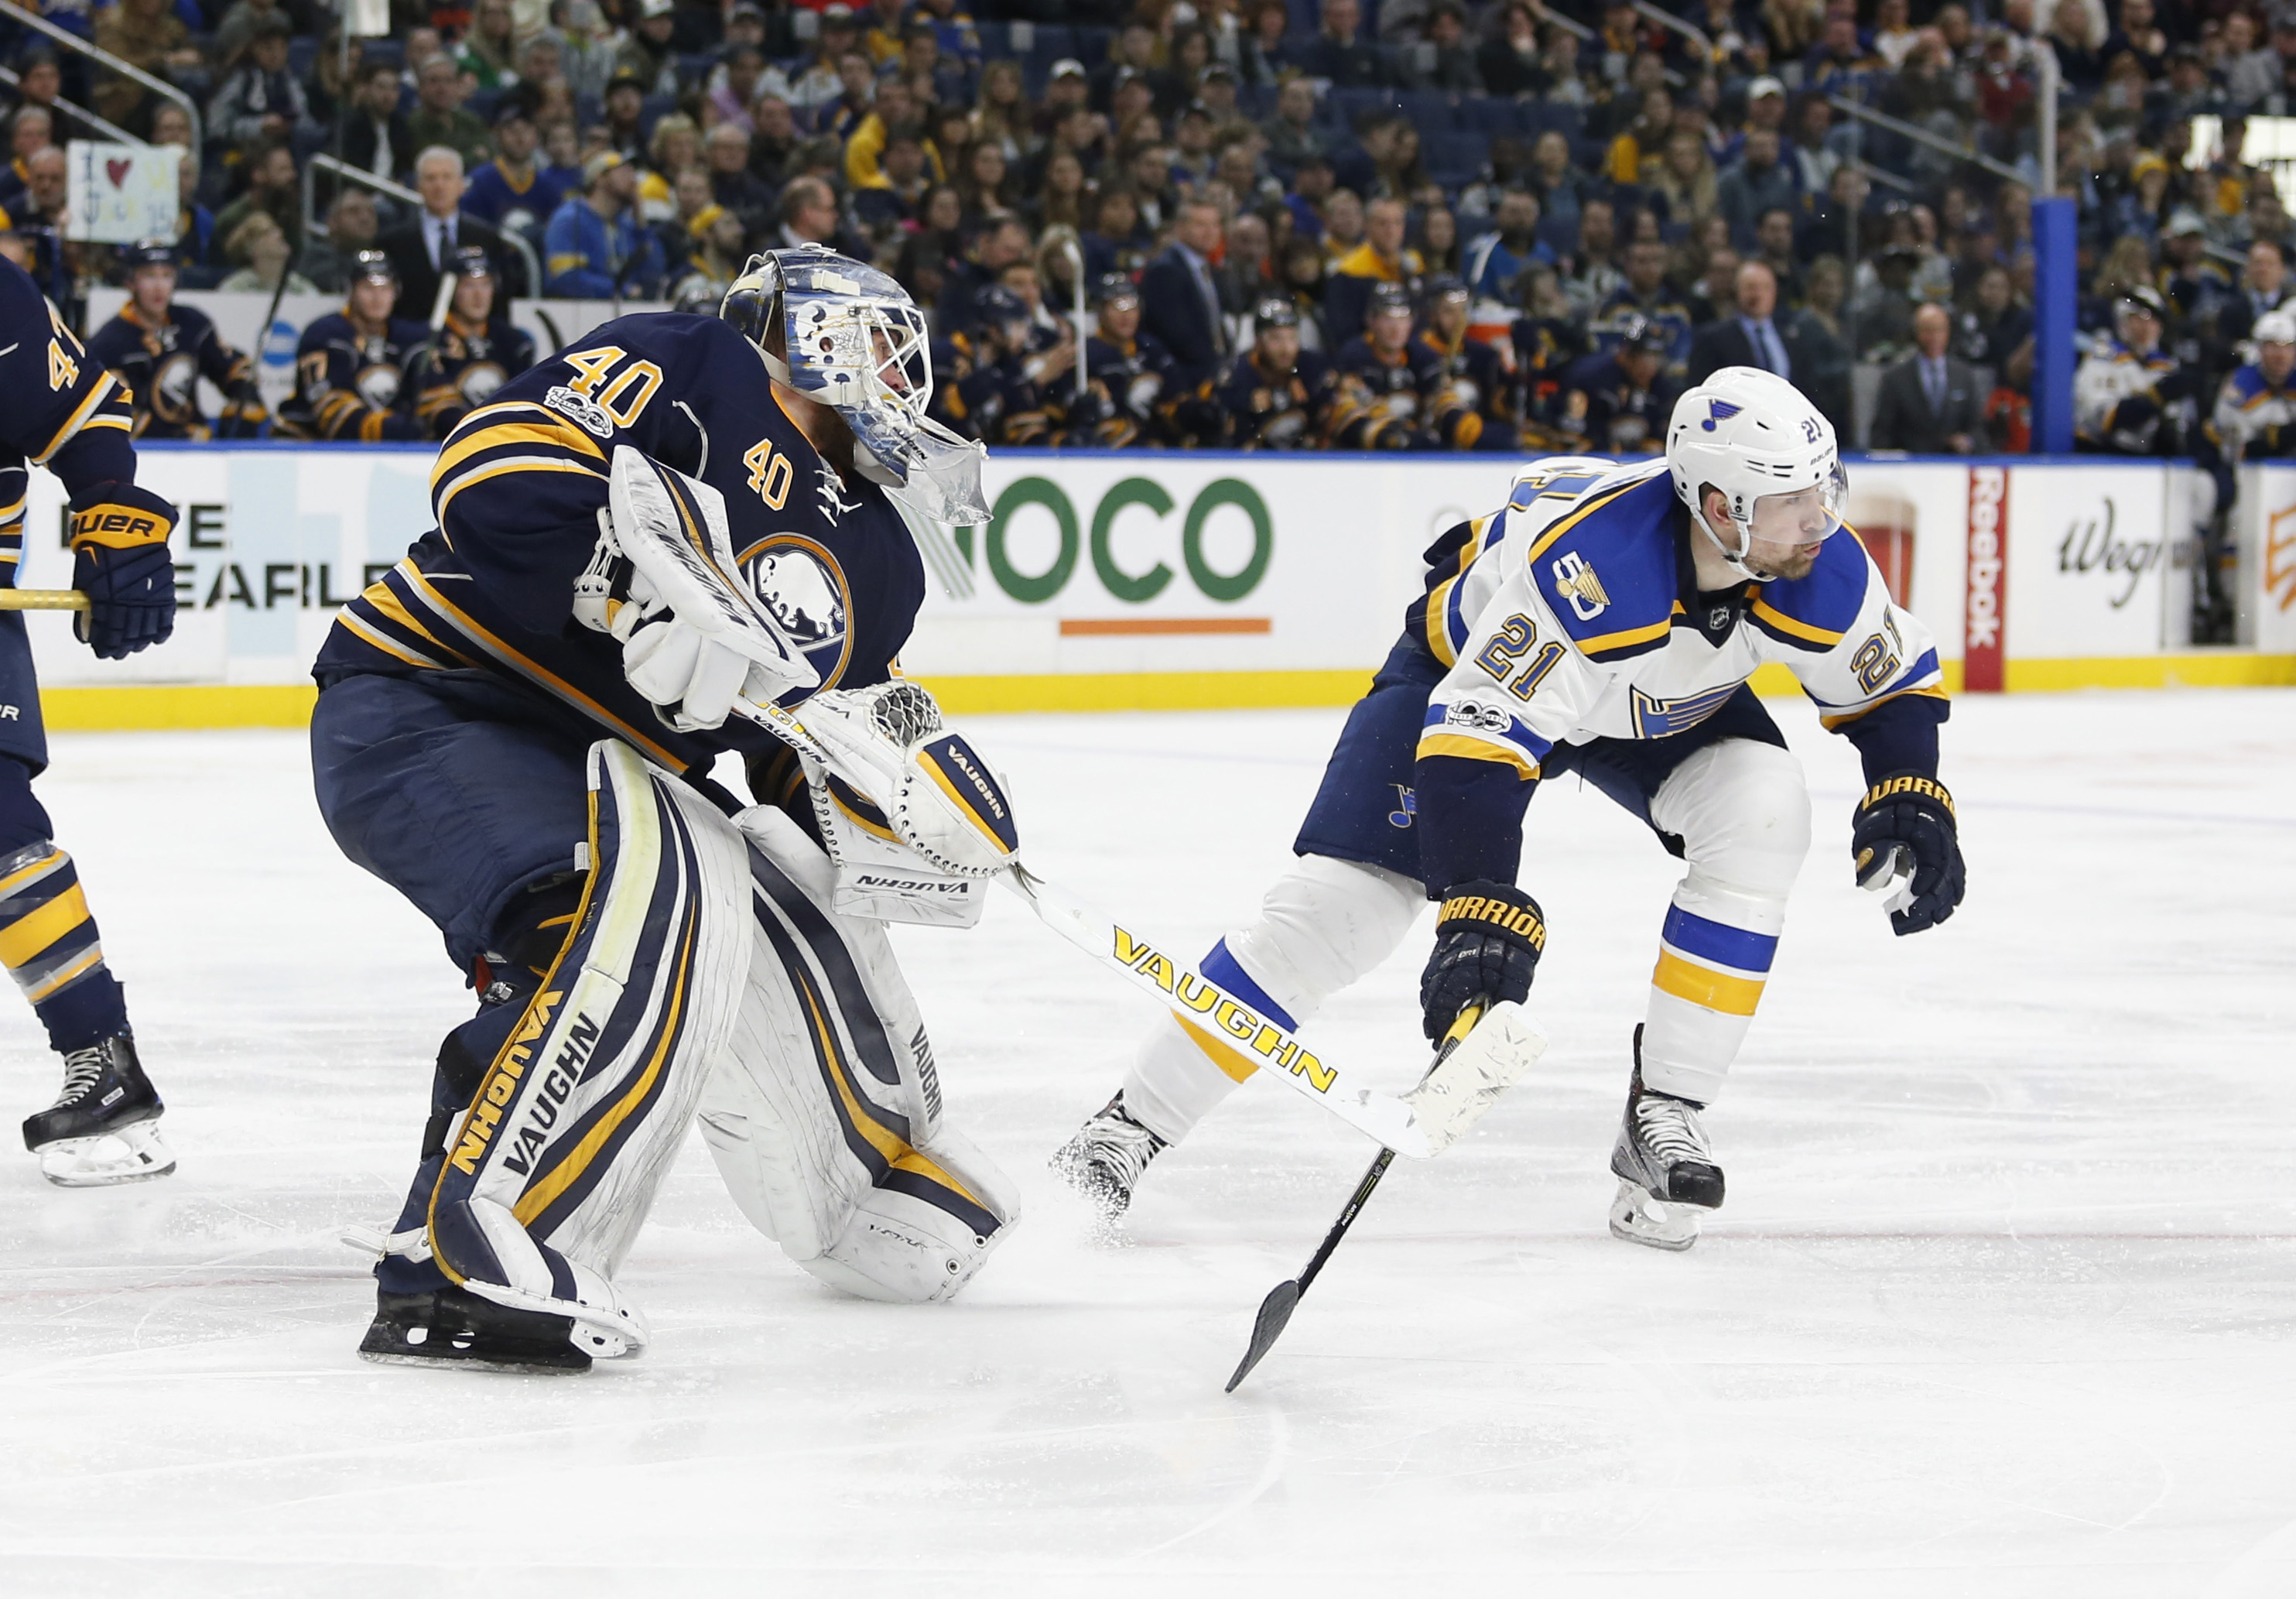 9884722-nhl-st.-louis-blues-at-buffalo-sabres